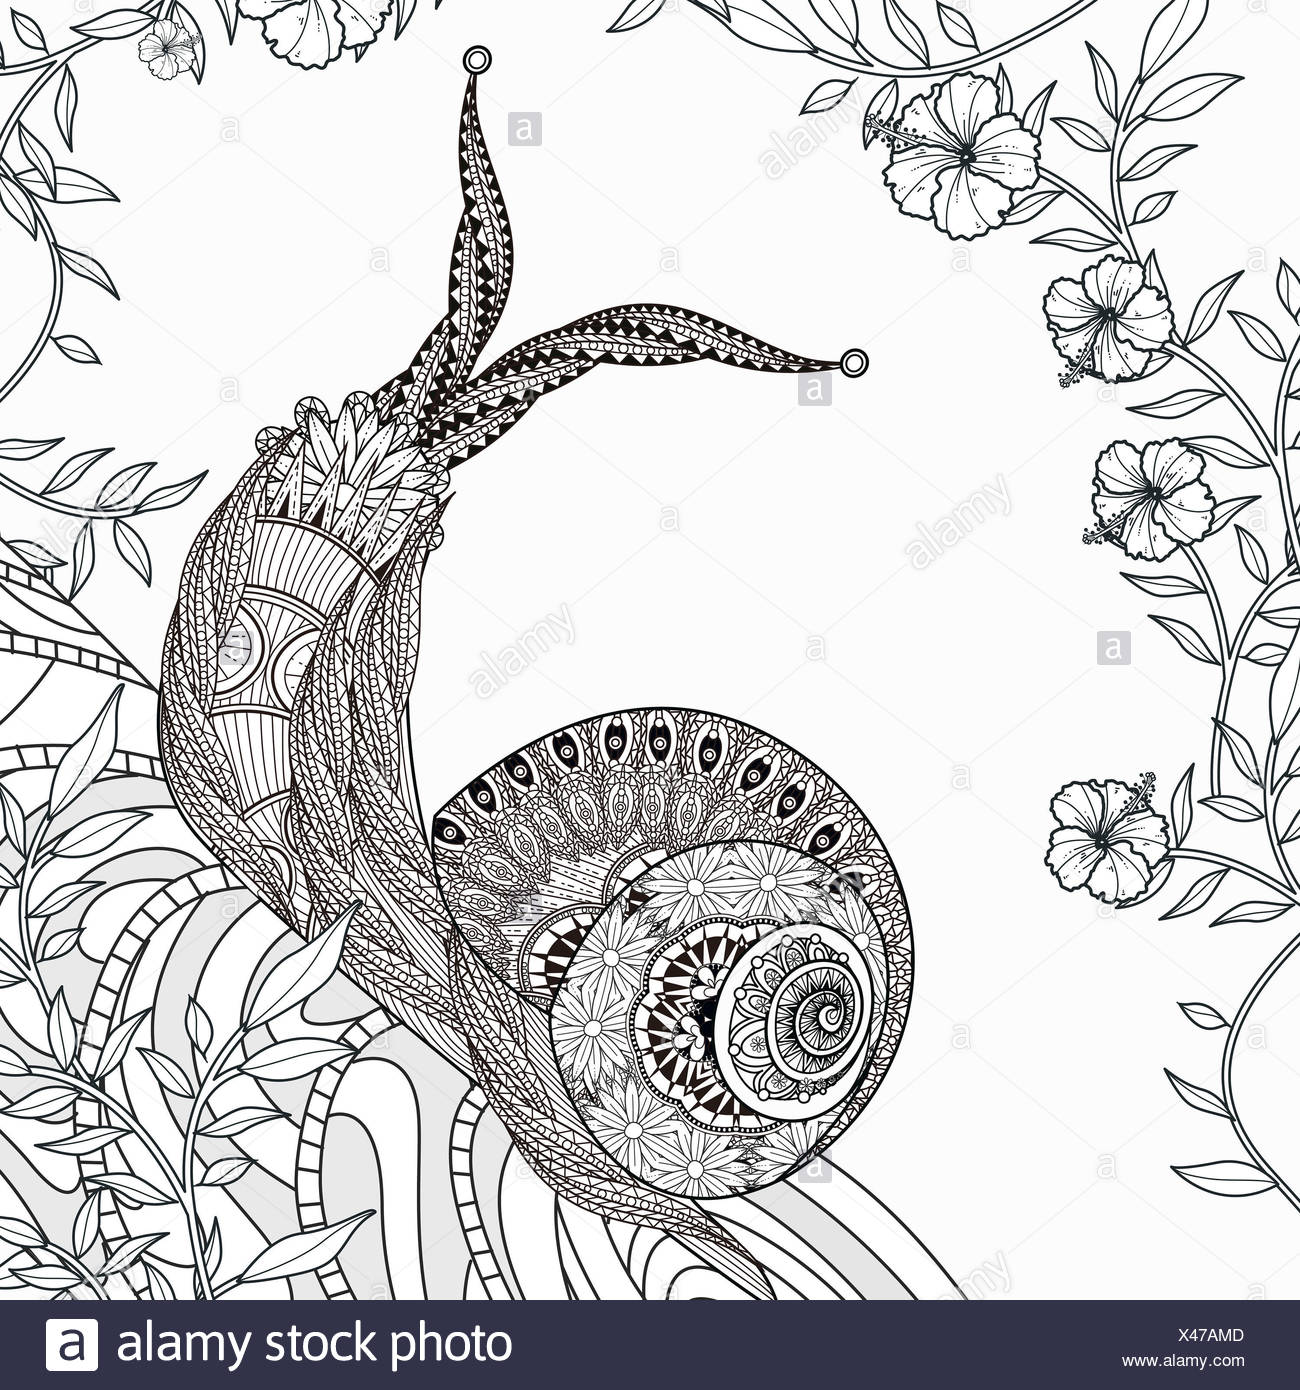 Vector Spiral Doodle Illustration Coloring Stockfotos & Vector ...